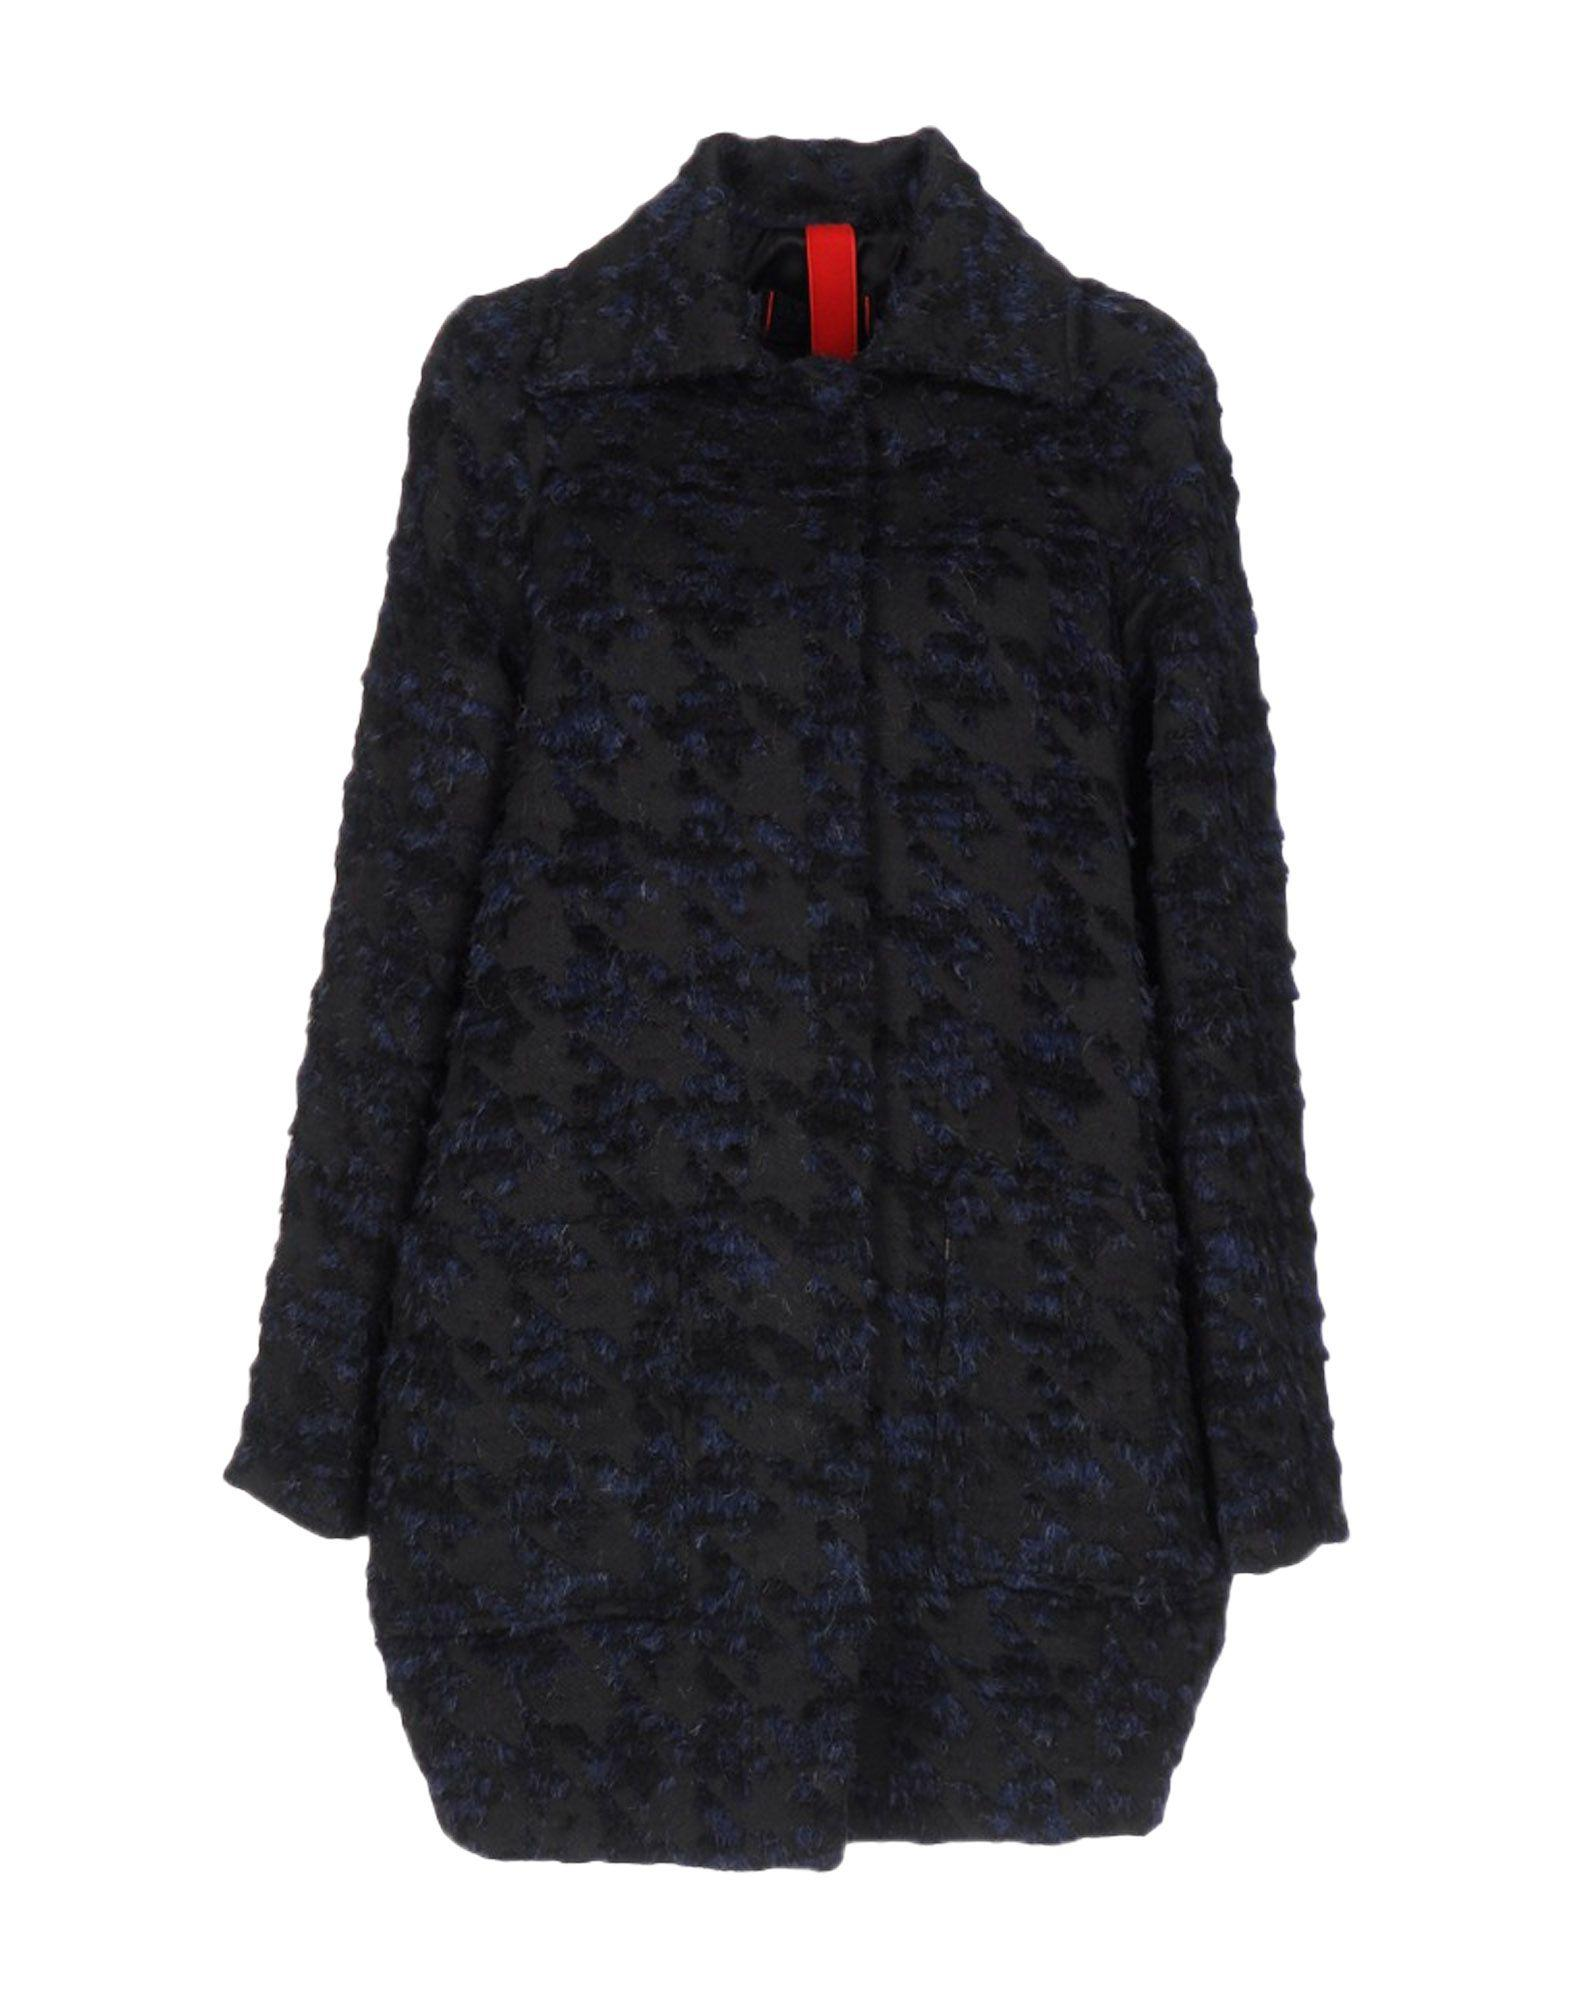 Femme By Michele Rossi Coats In Black